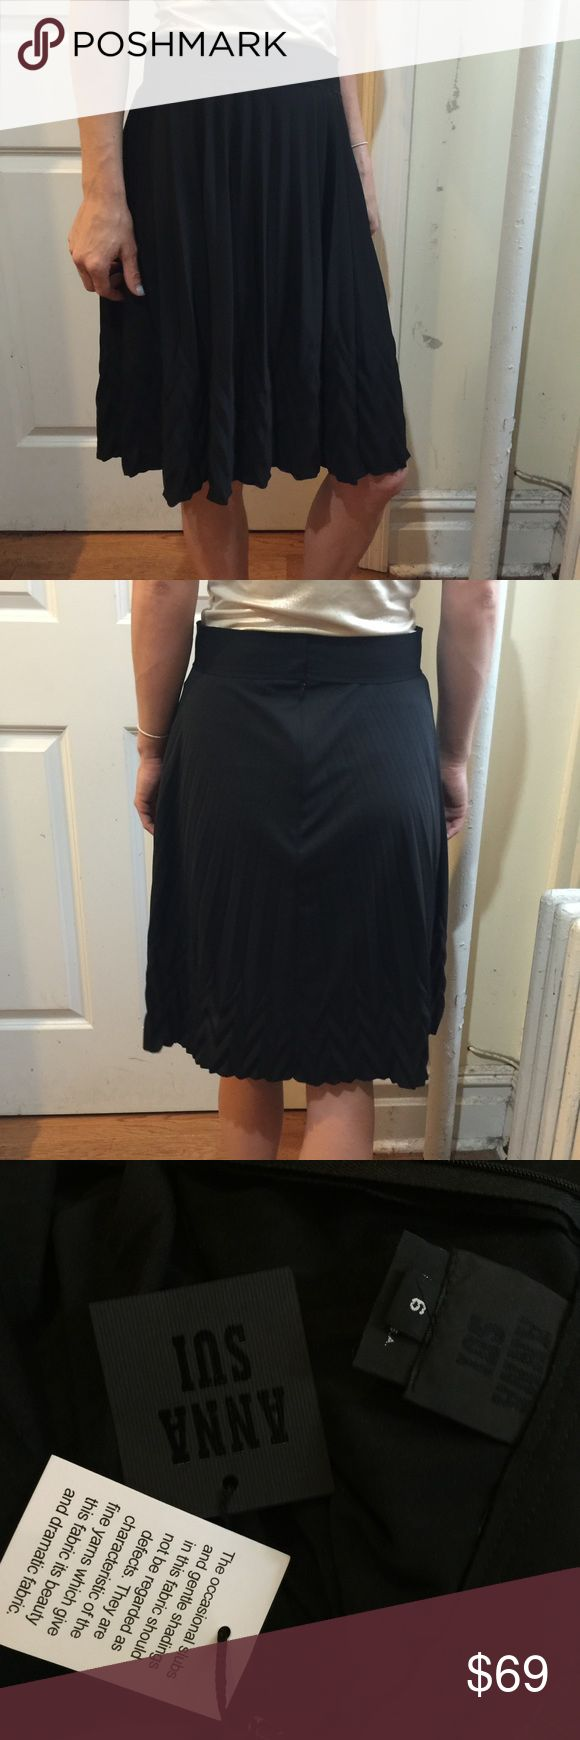 NWT Anna Sui Black Pleated Skirt Anna Sui new with tags skirt in black with visible textured pleats on bottom hem. Skirt is circle style and not lined and has zipper closure with hook and eyes above. Size 6. Anna Sui Skirts A-Line or Full